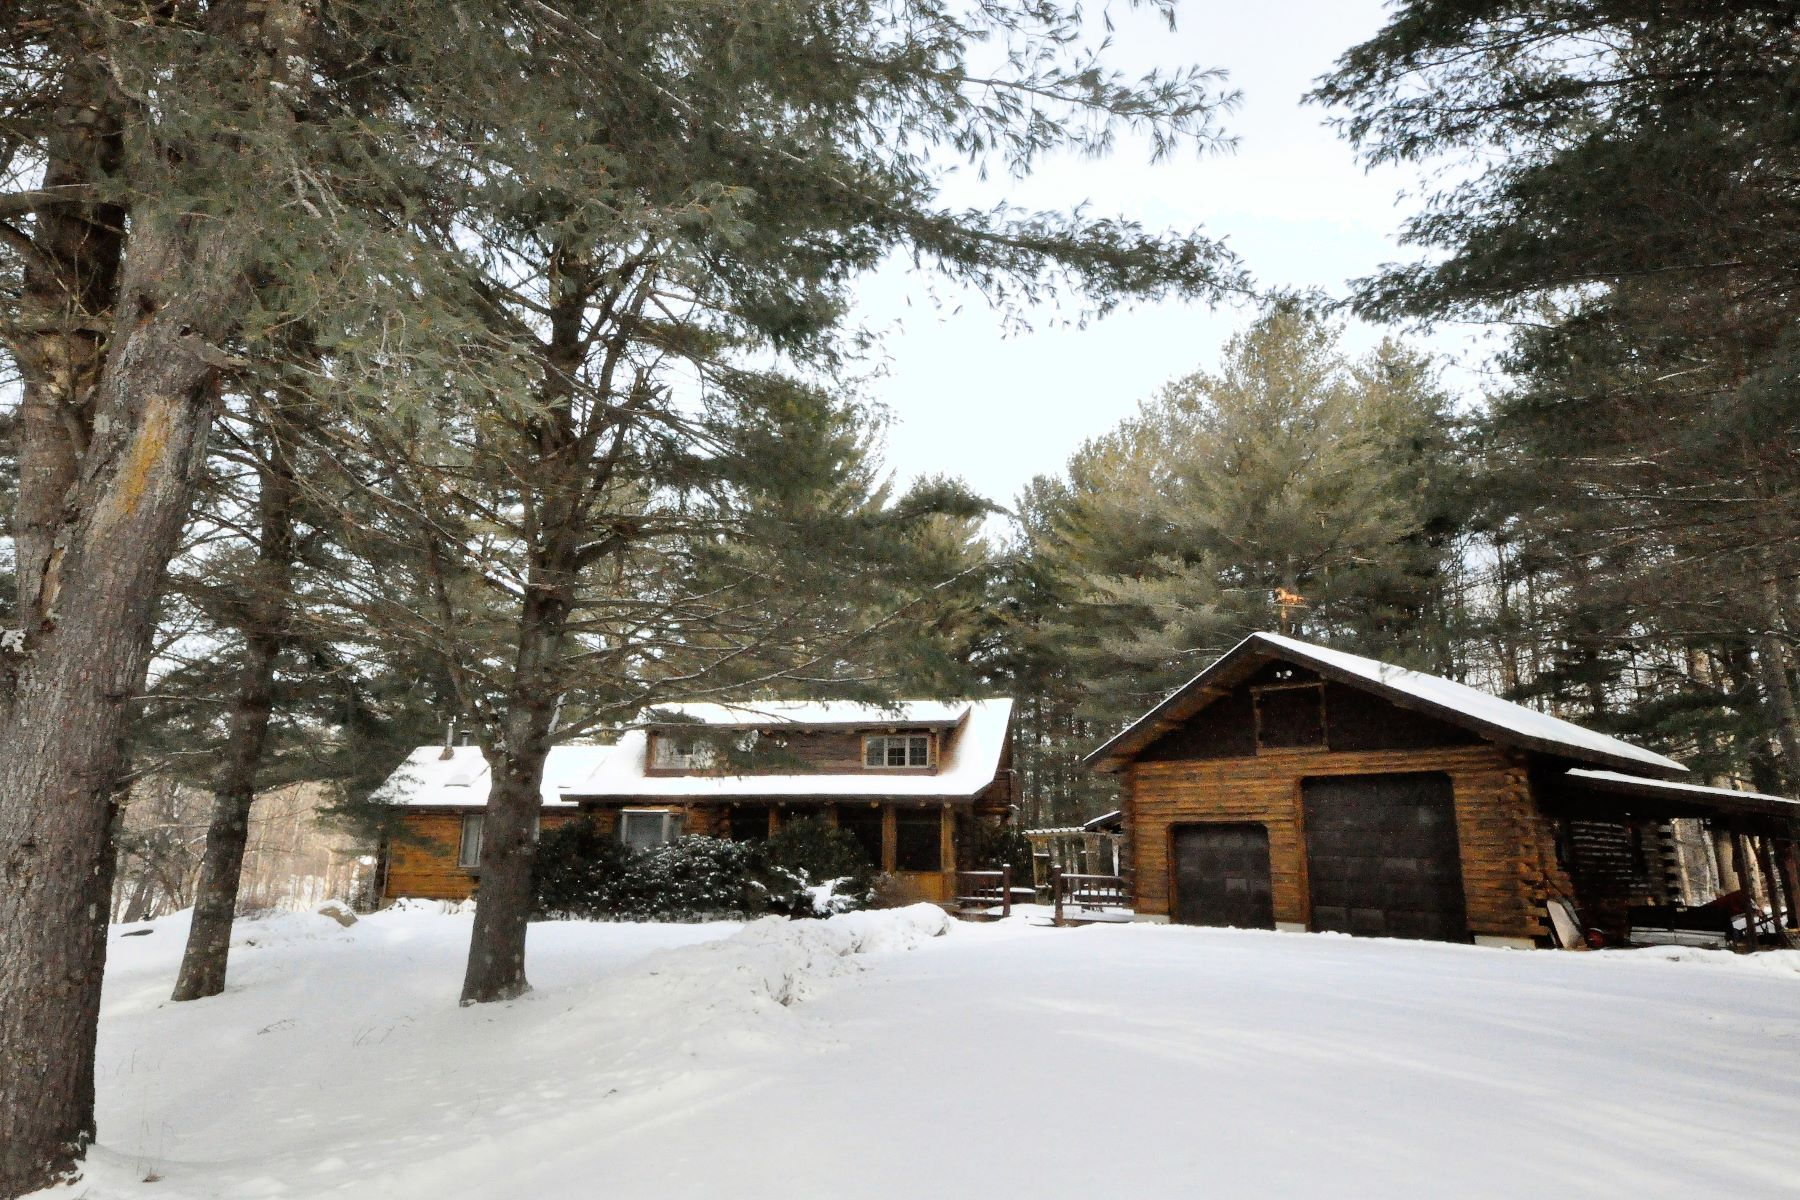 Single Family Home for Sale at Wonderful Country Escape 39 Mcmillan Rd Whitingham, Vermont, 05361 United States